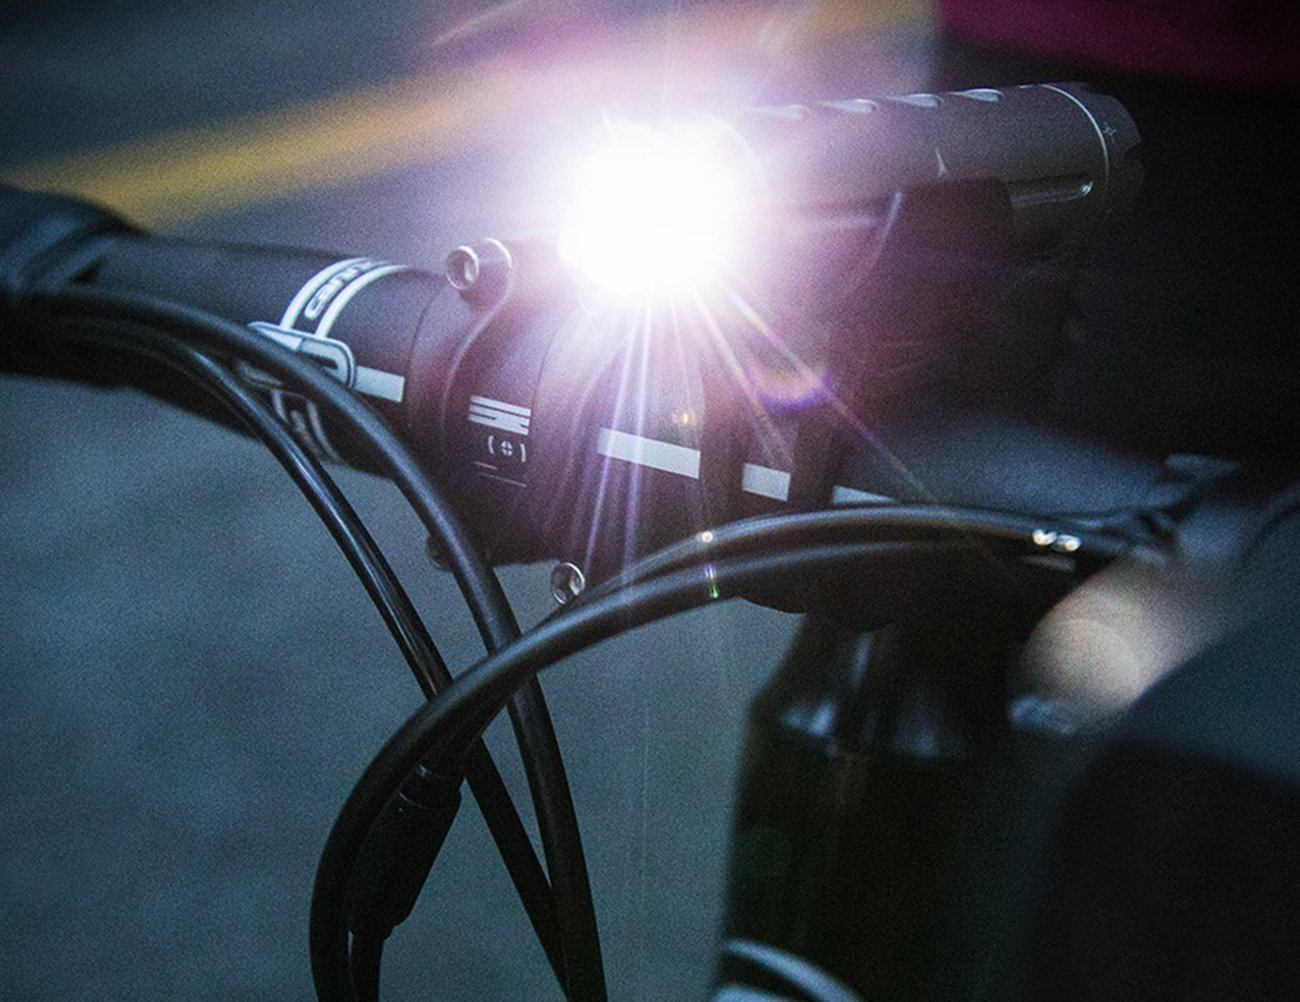 Fabric 300-Lumen Bike Light